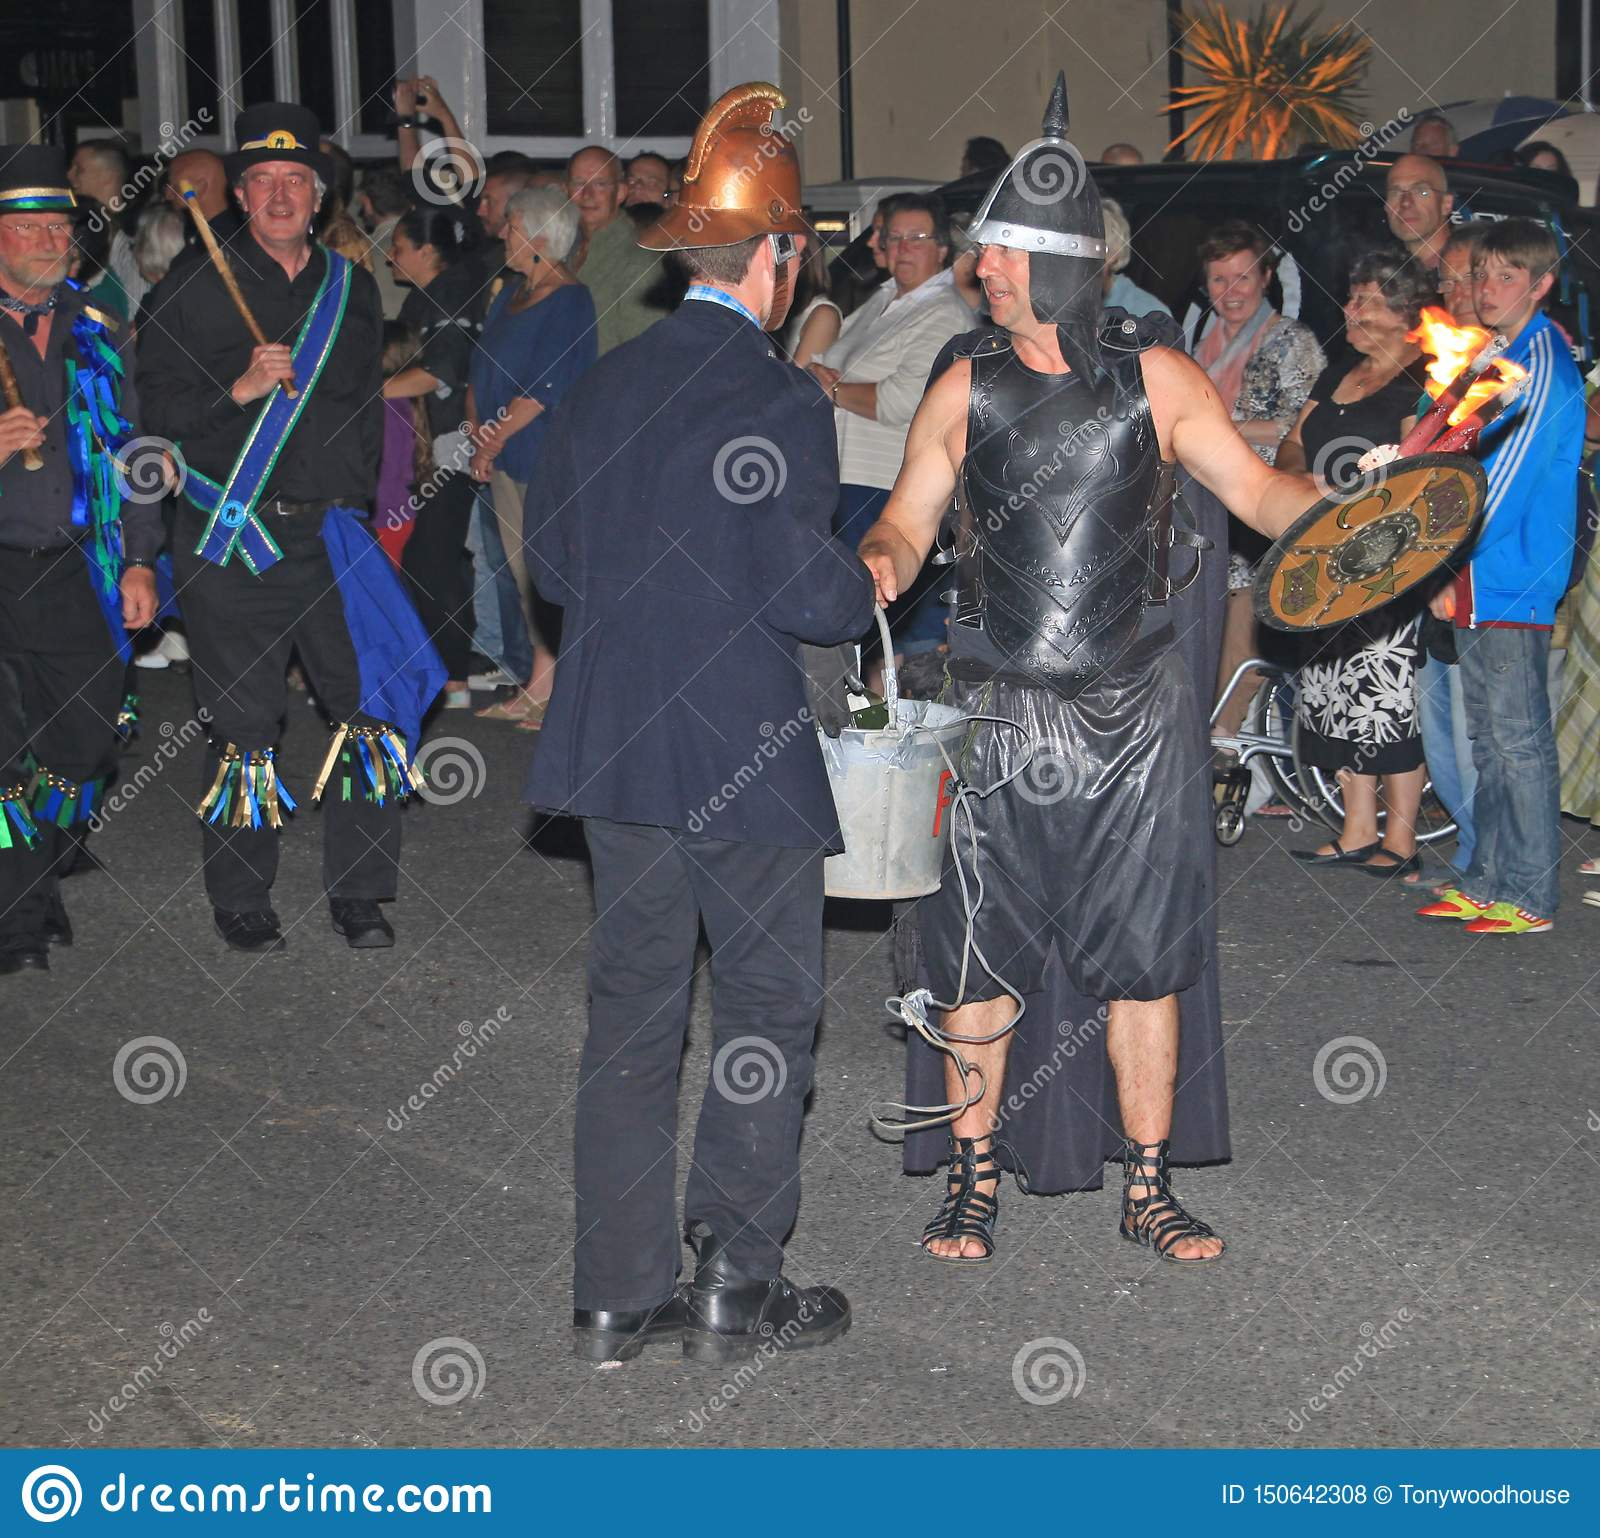 SIDMOUTH, DEVON, ENGLAND - AUGUST 10TH 2012: A man dressed as a fireman and another dressed as an ancient warrior take part in the